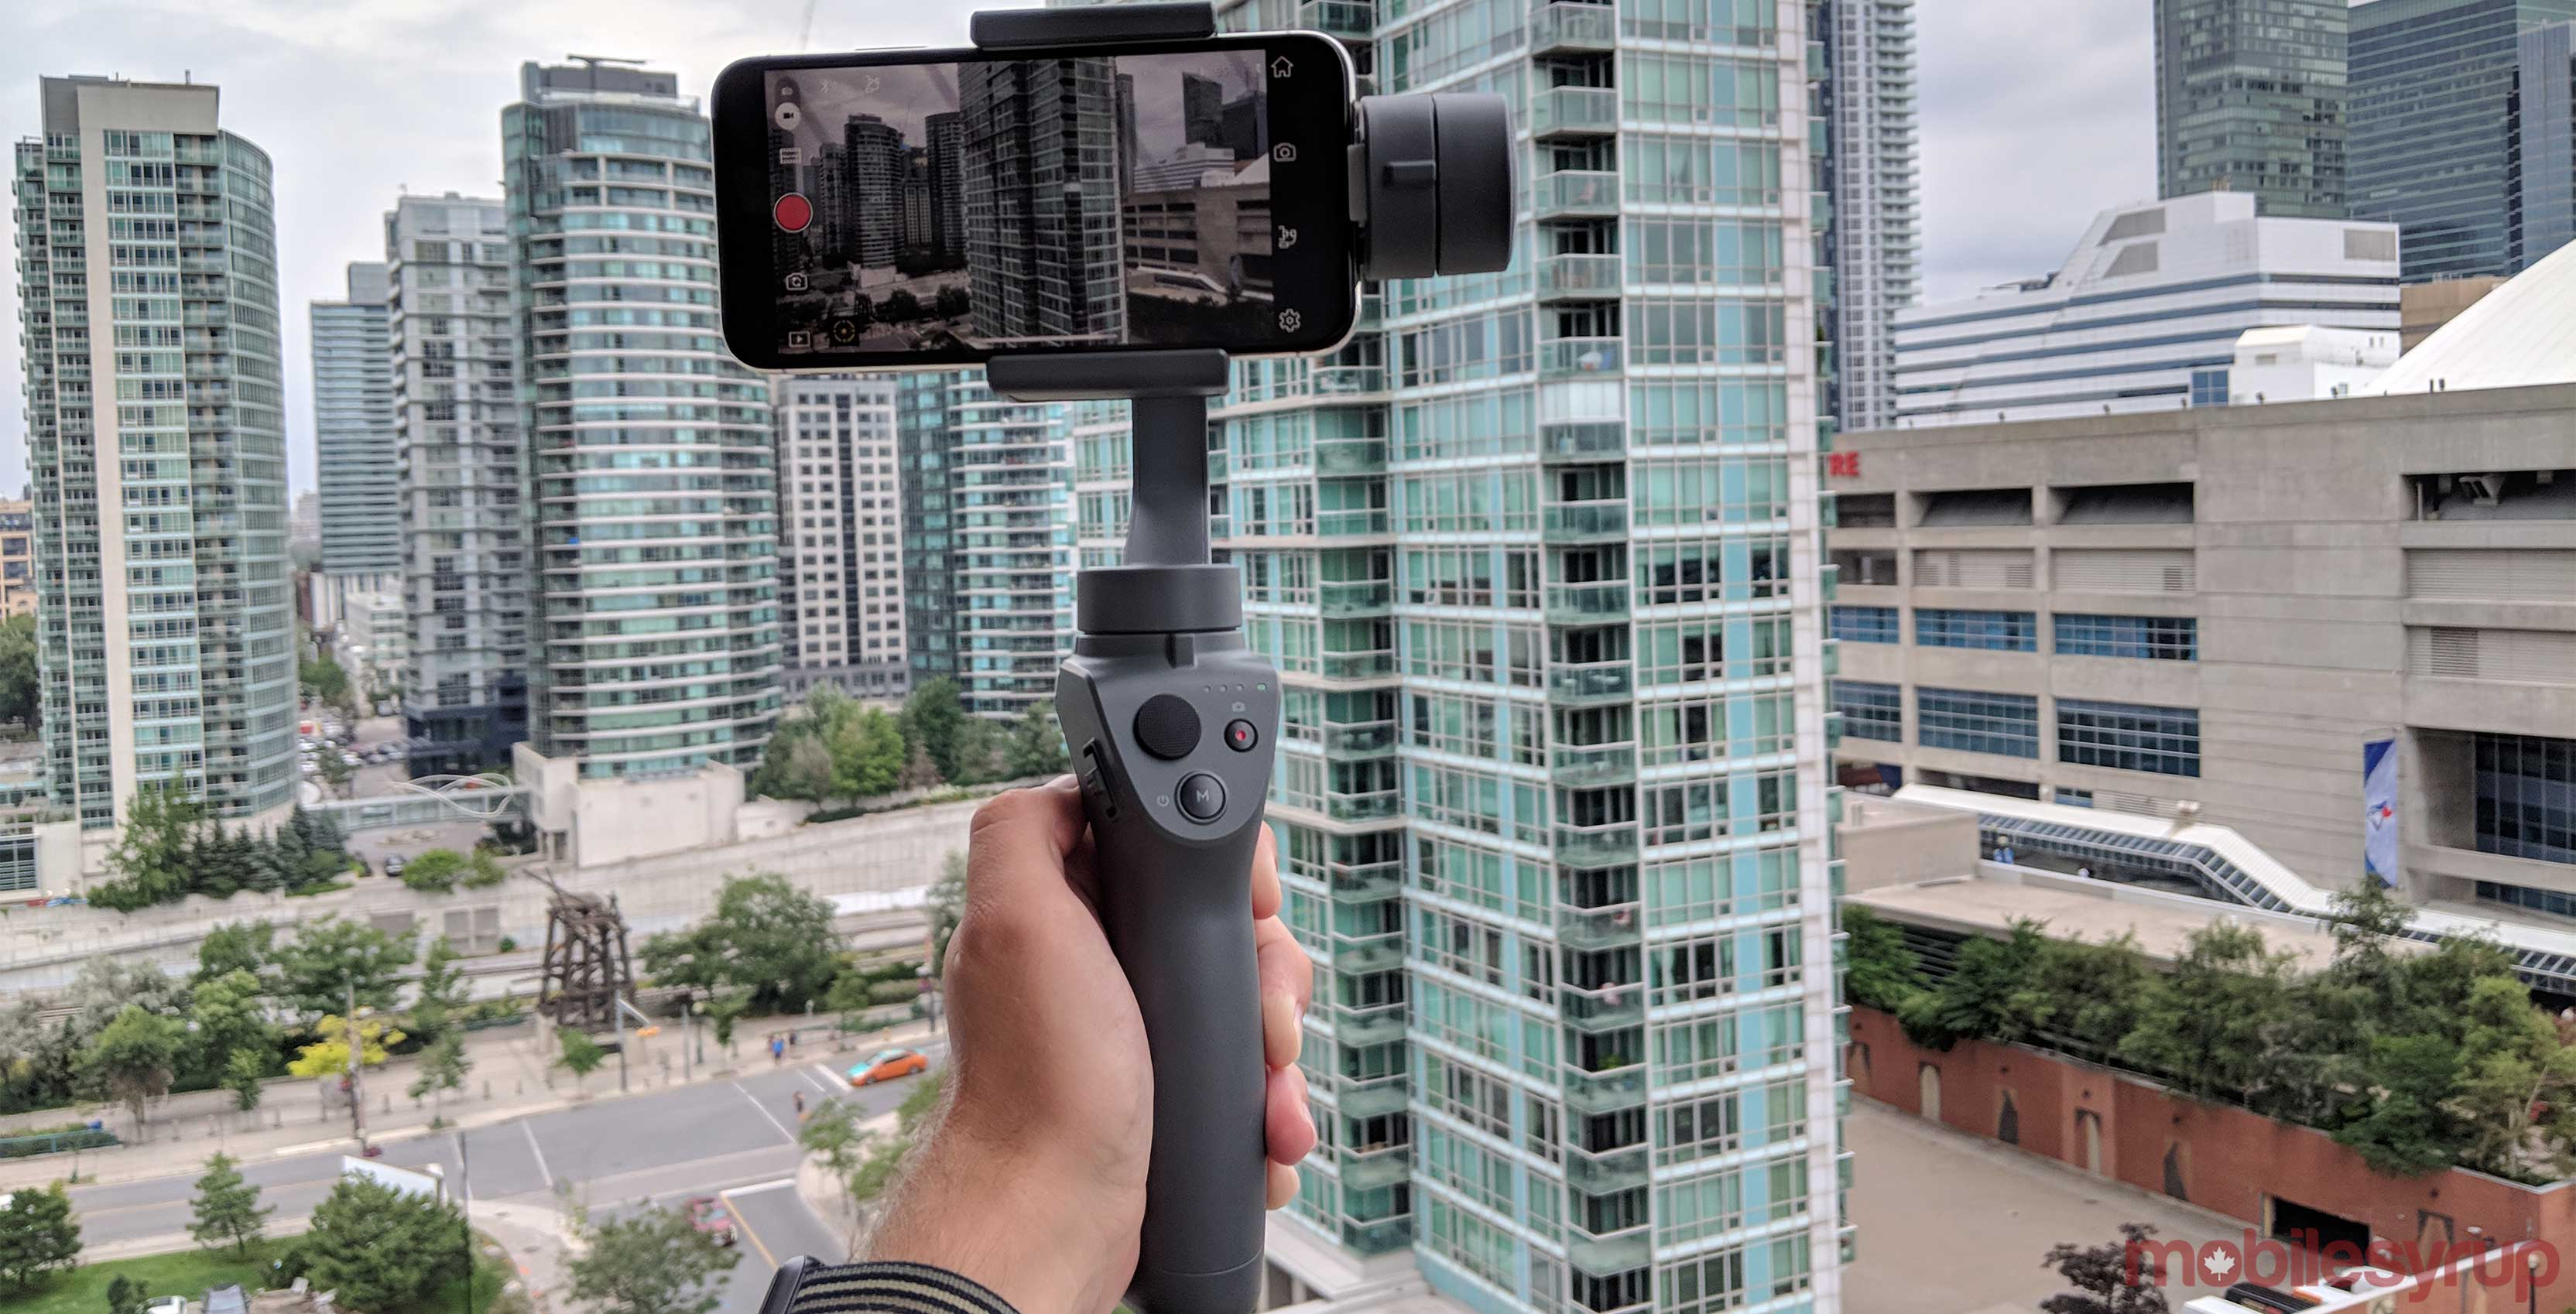 DJI Osmo Mobile 2 Review: Compelling handheld stabilizer ready for